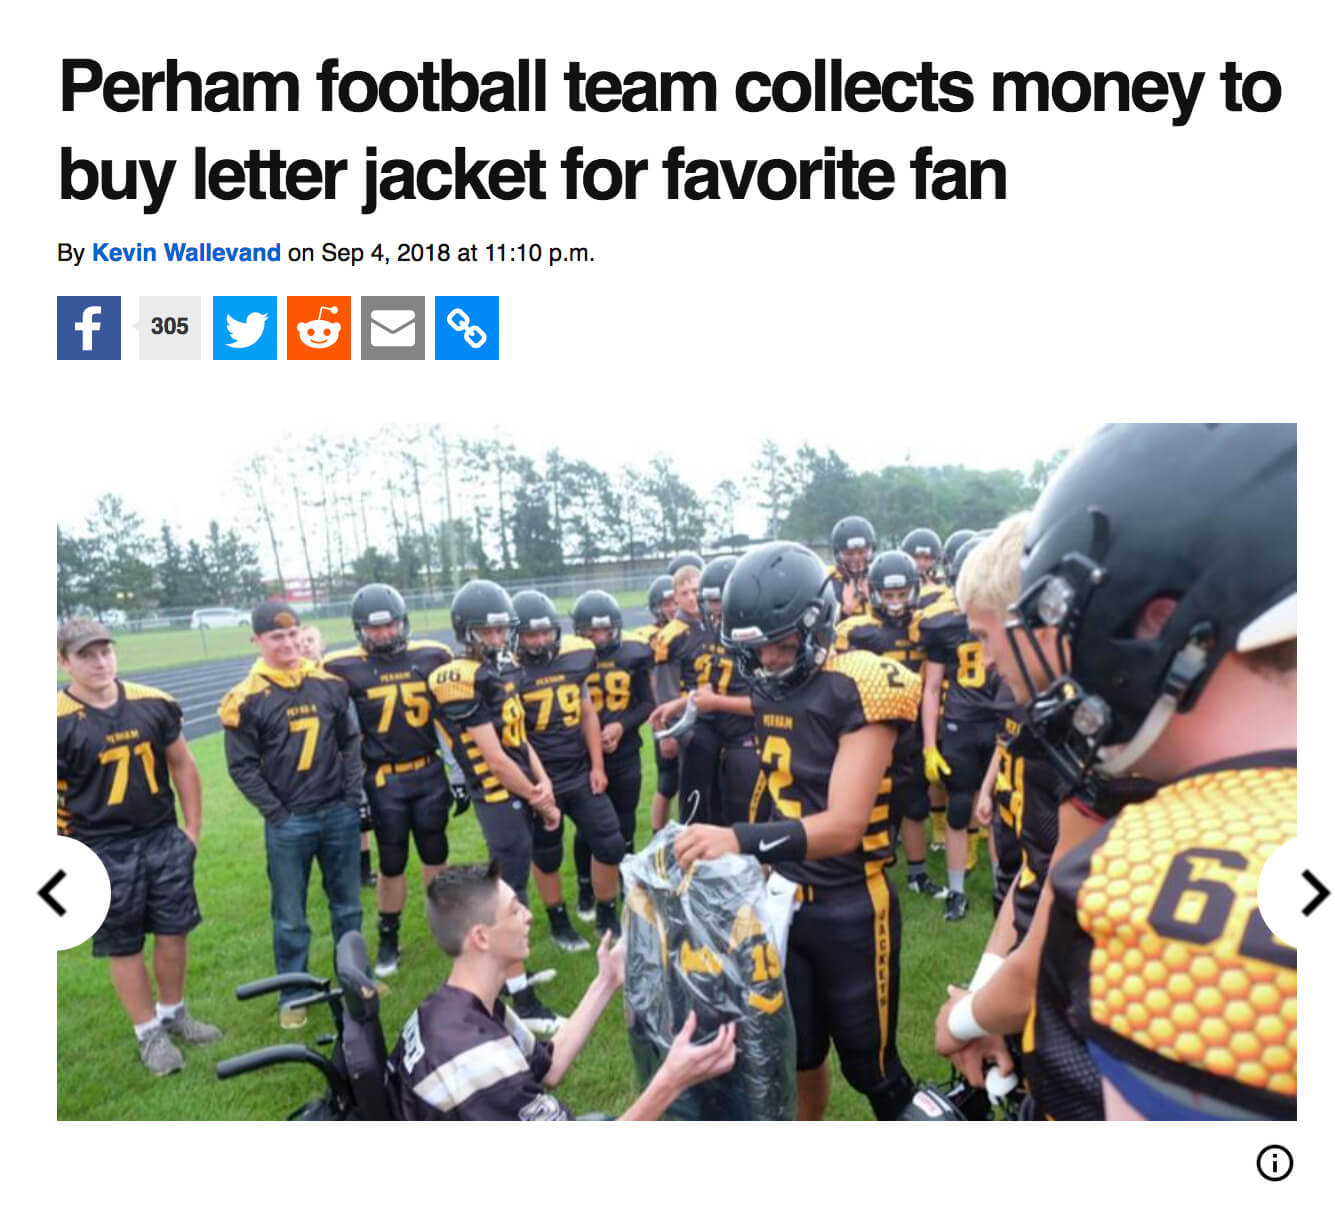 Perham Football team buys jacket for biggest fan